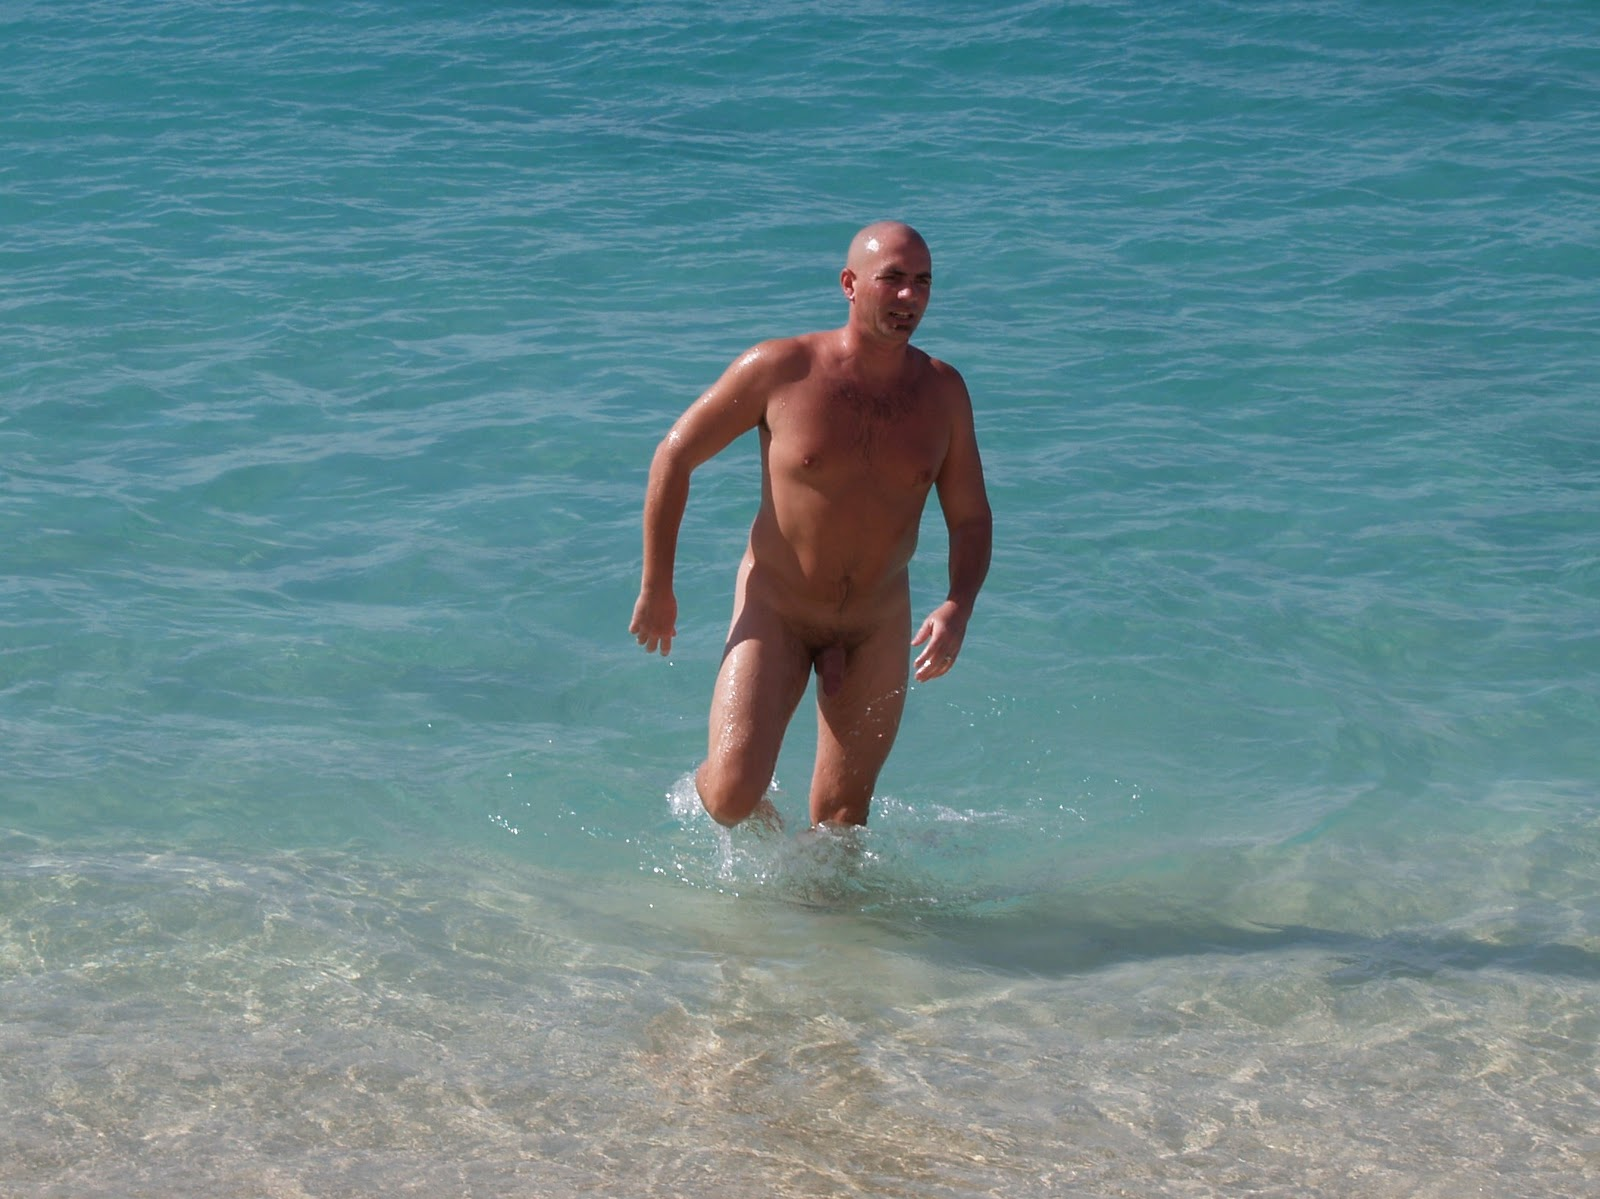 saint maarten nudist beach